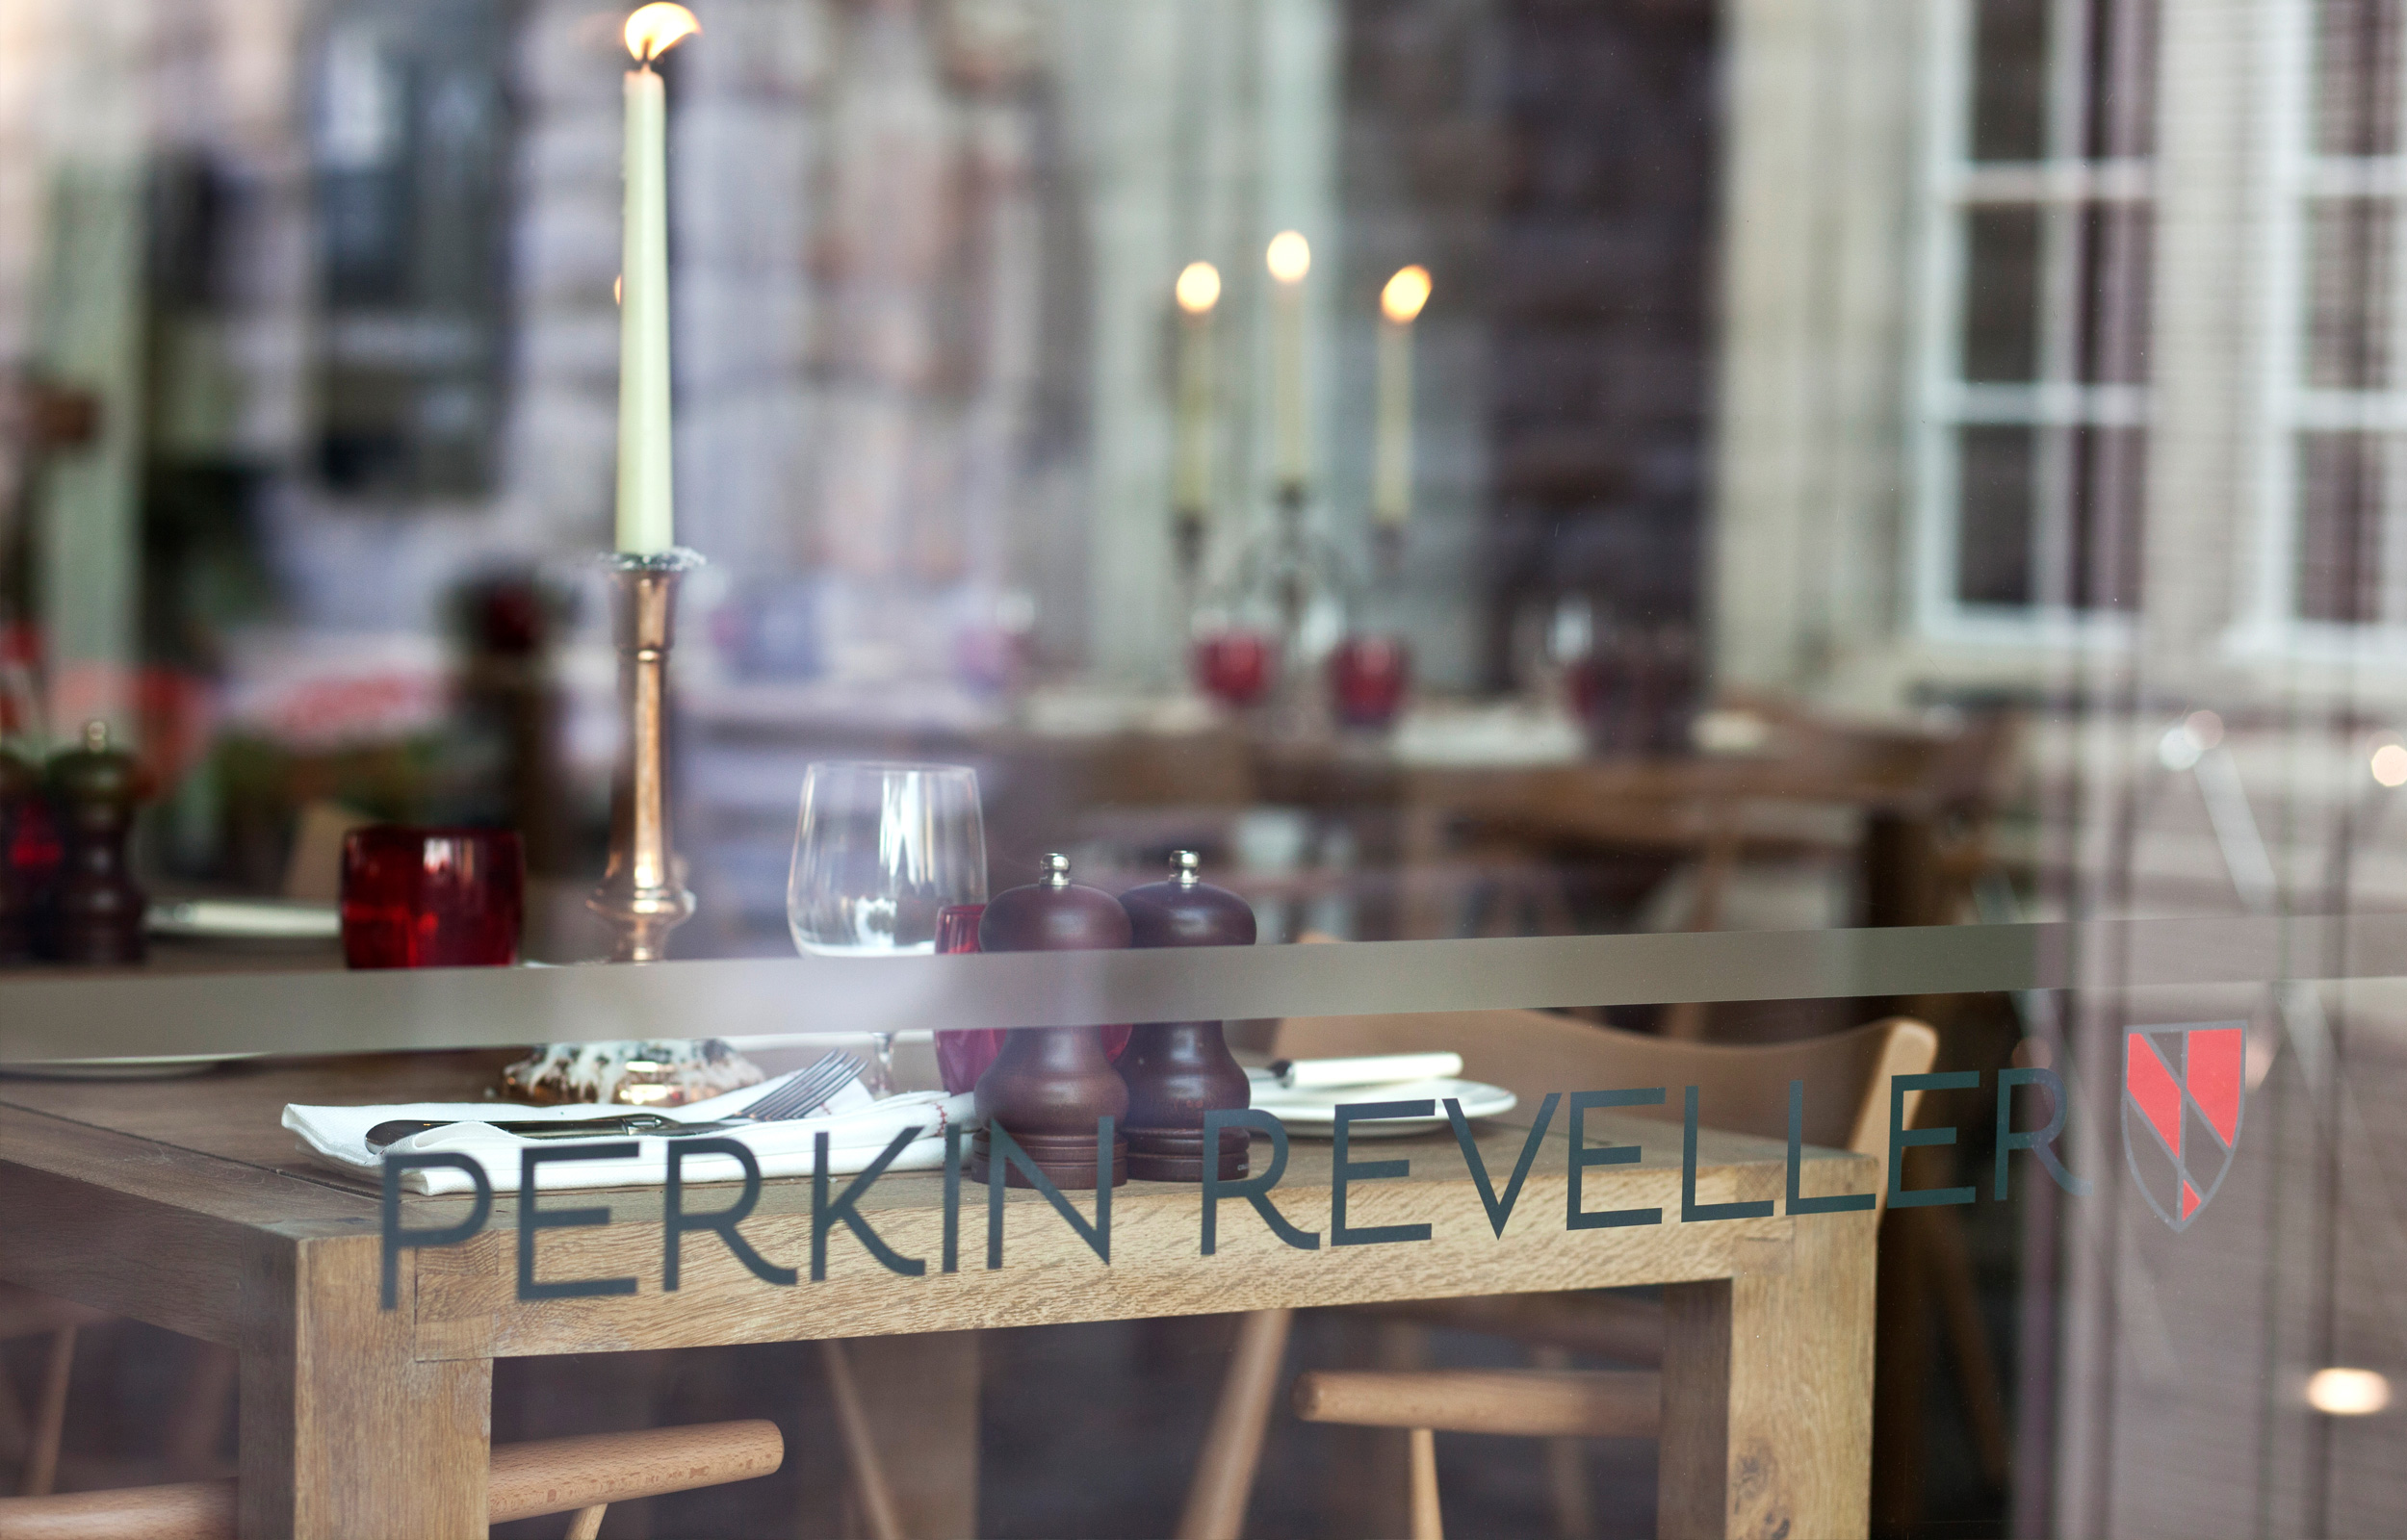 Perkin-reveller-Narrative-4